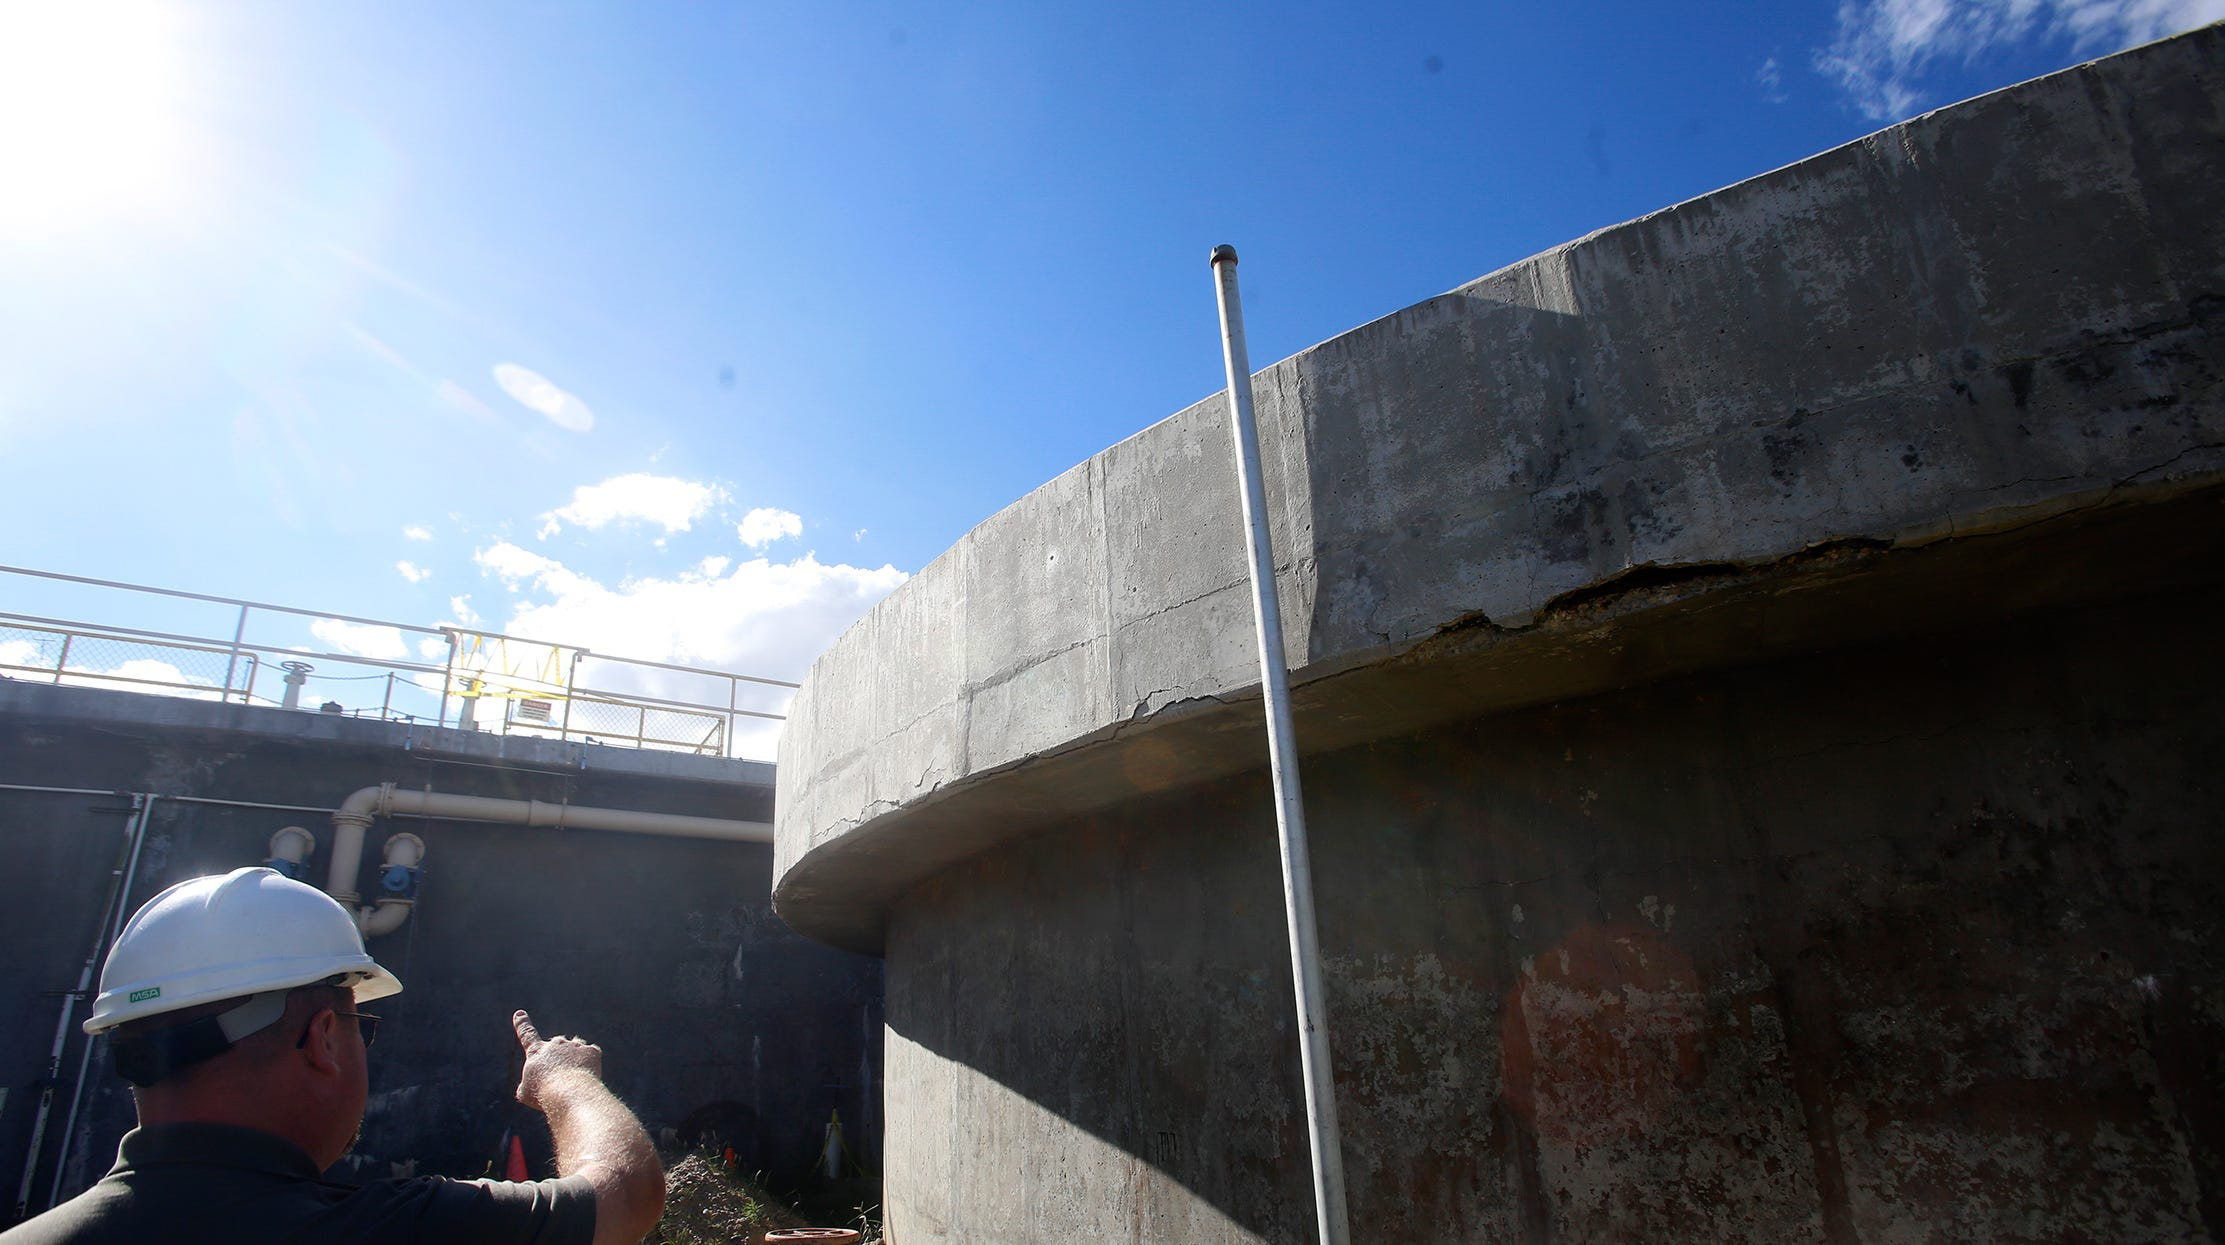 City of Bloomfield Water Reclamation Facility Operations Foreman Dave Sonnenberg talks about repairs needed on the wastewater treatment plant's settling tanks in a file photo from Sept. 12. 2015.